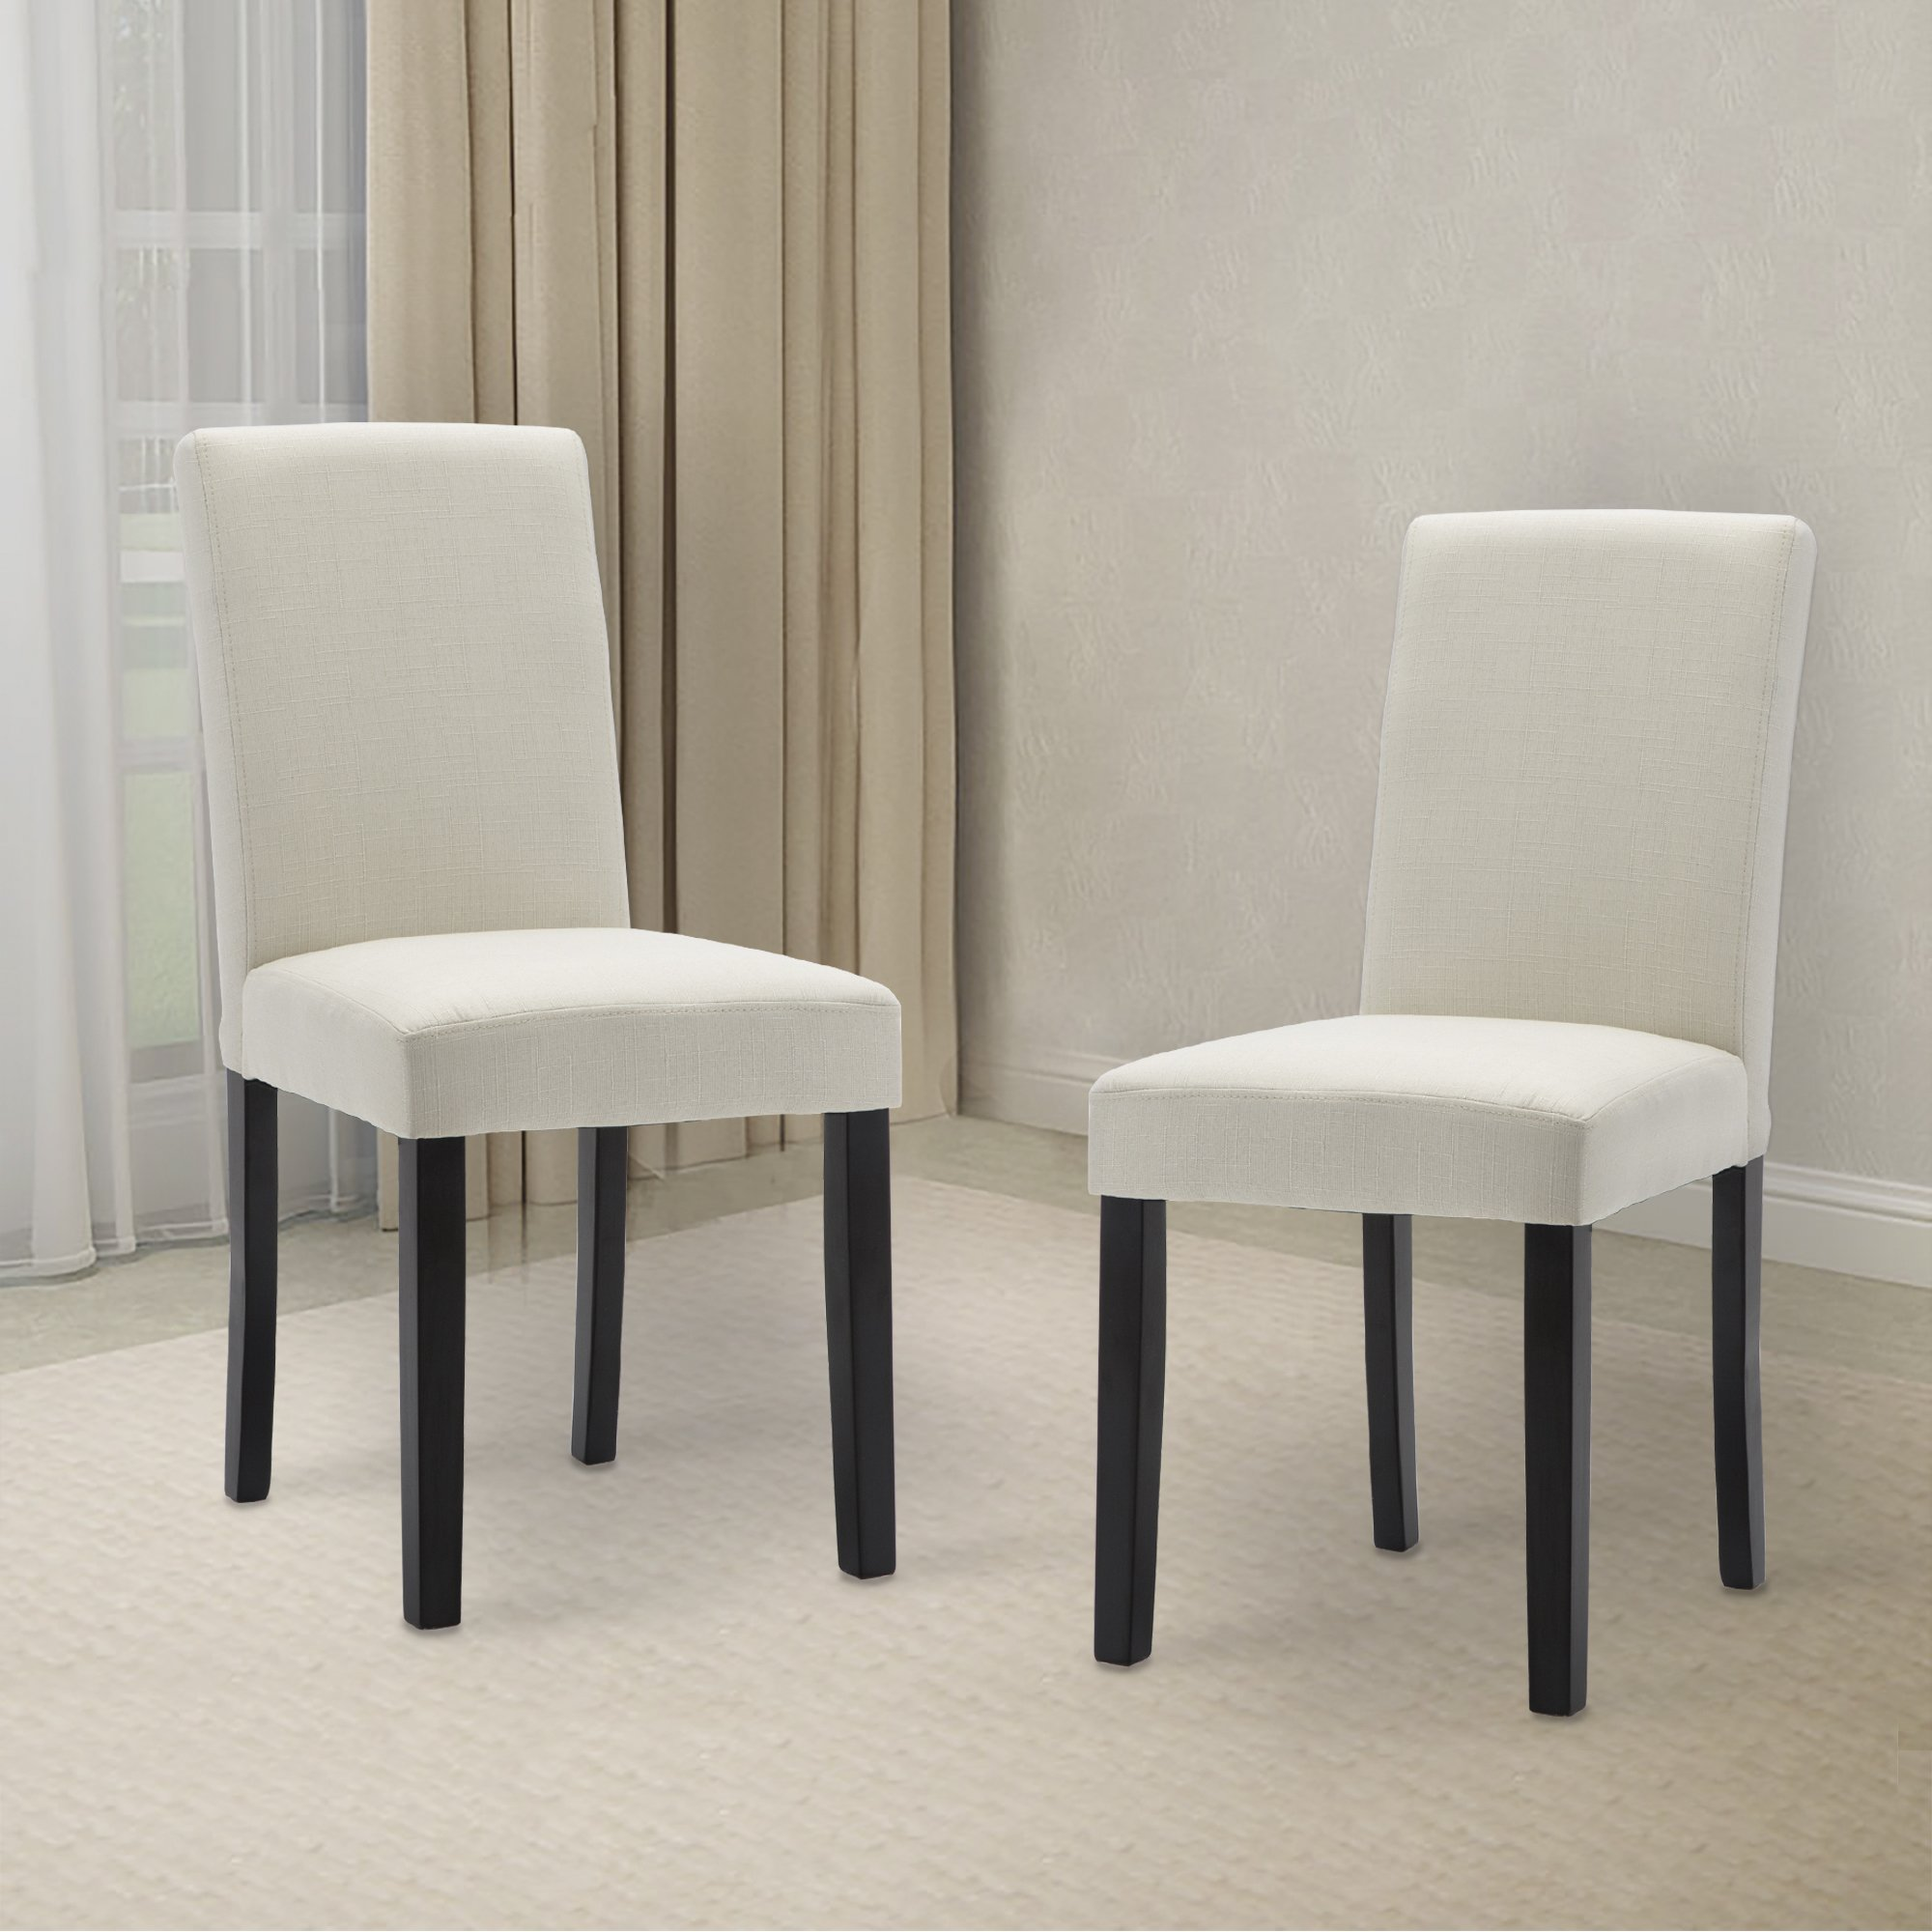 LSSBOUGHT Set of 2 Classic Fabric Dining Chairs Dining Room Chair with Solid Wood Legs, Beige